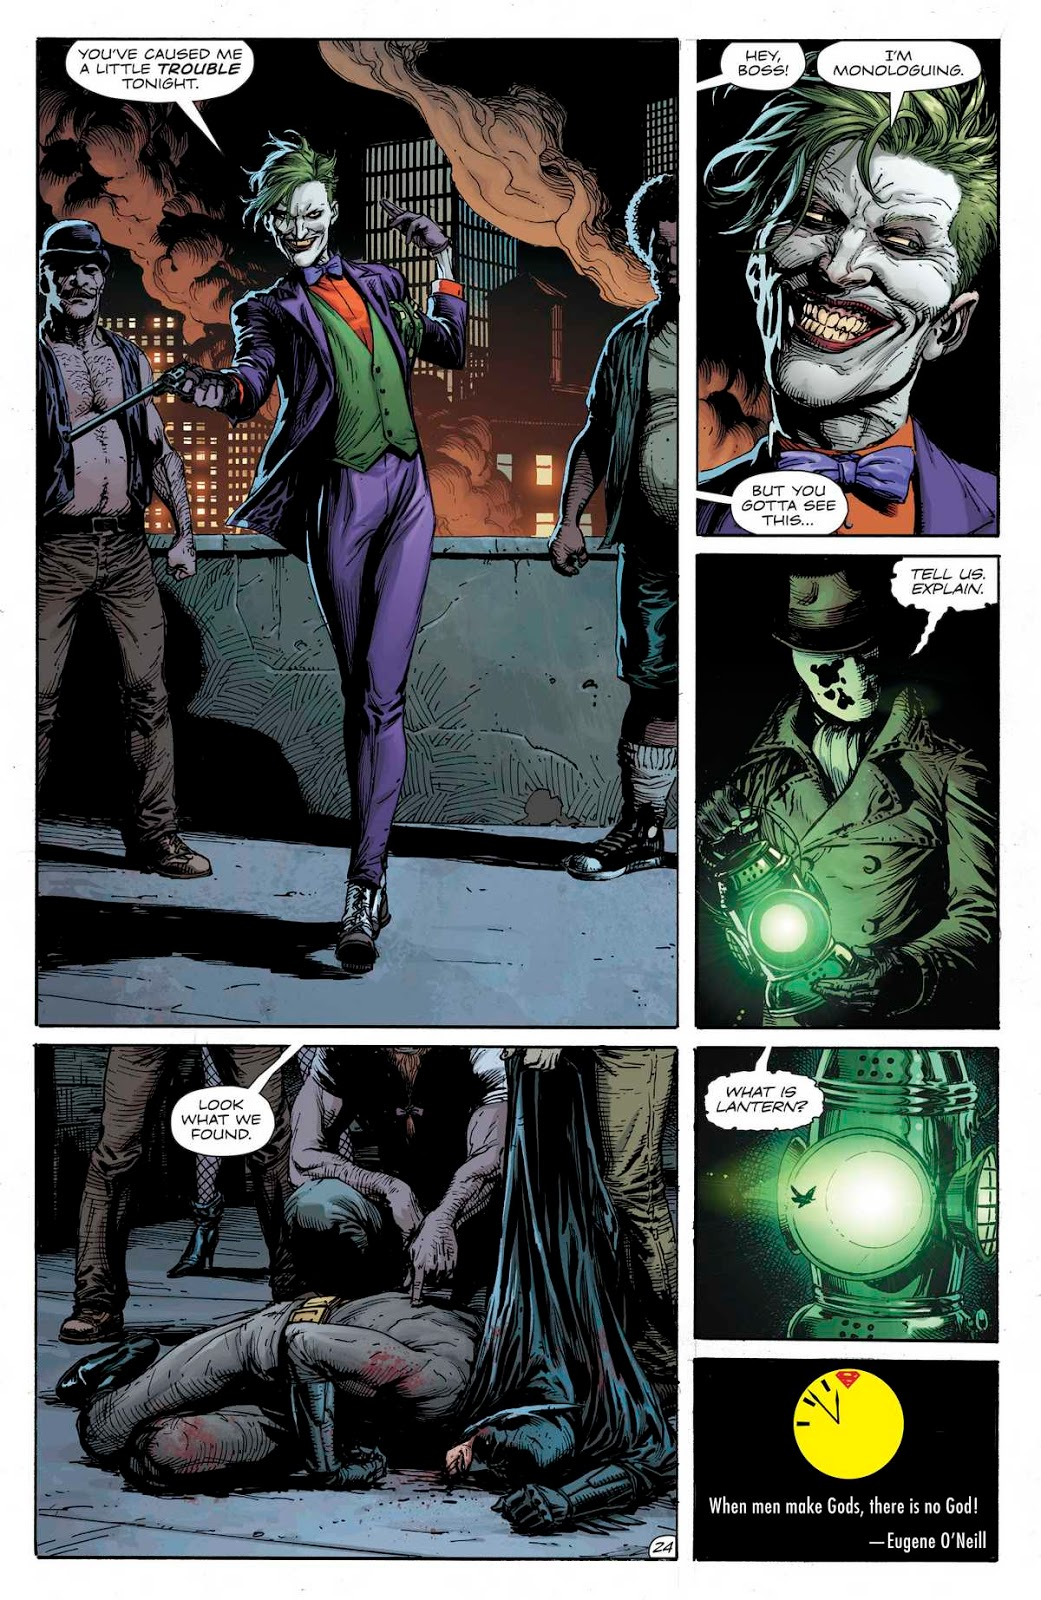 Helena Wayne Huntress Doomsday Clock 5 The Road To Finding The